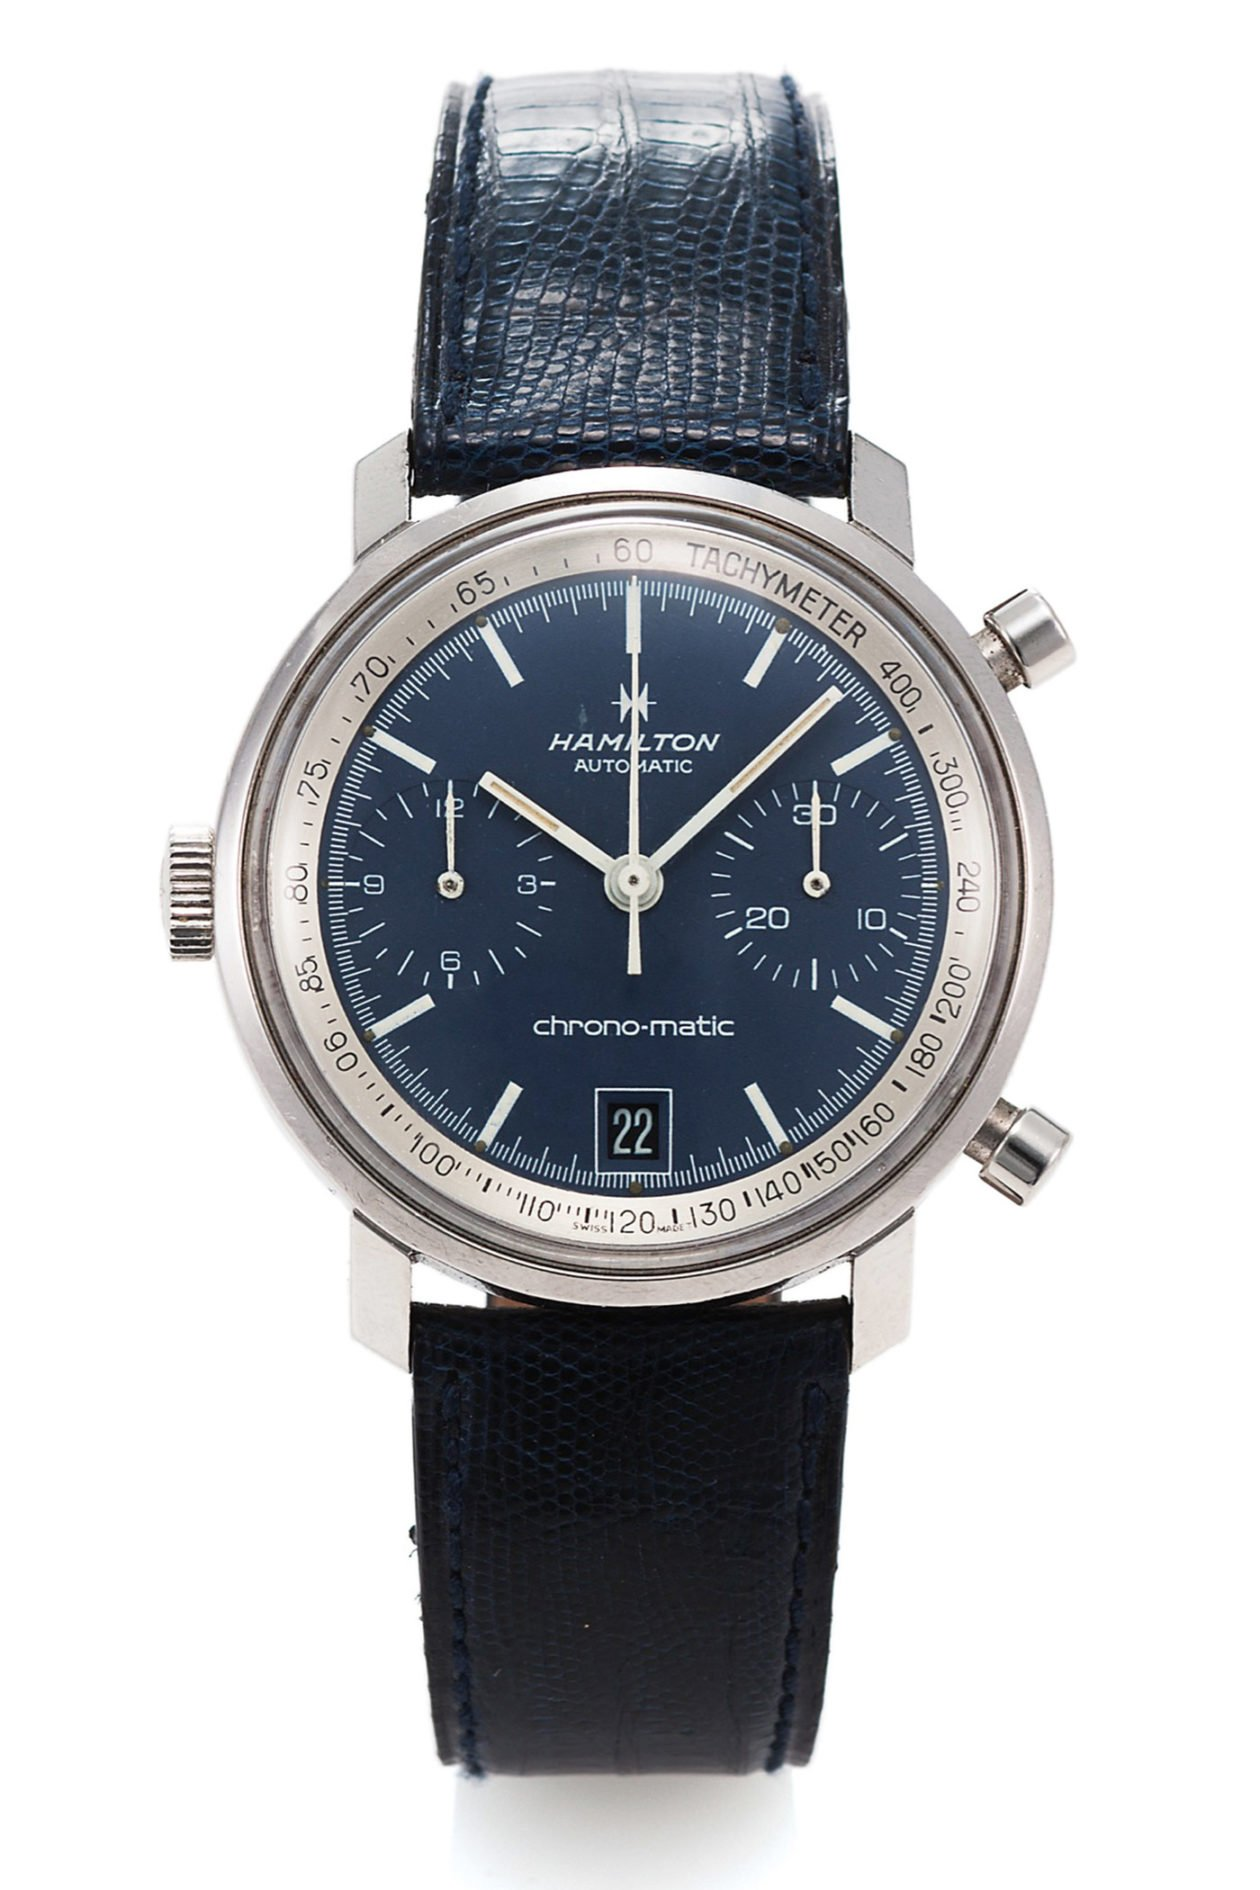 Hamilton Chrono-Matic 11002-3 z lat 70. / foto: Antiquorum